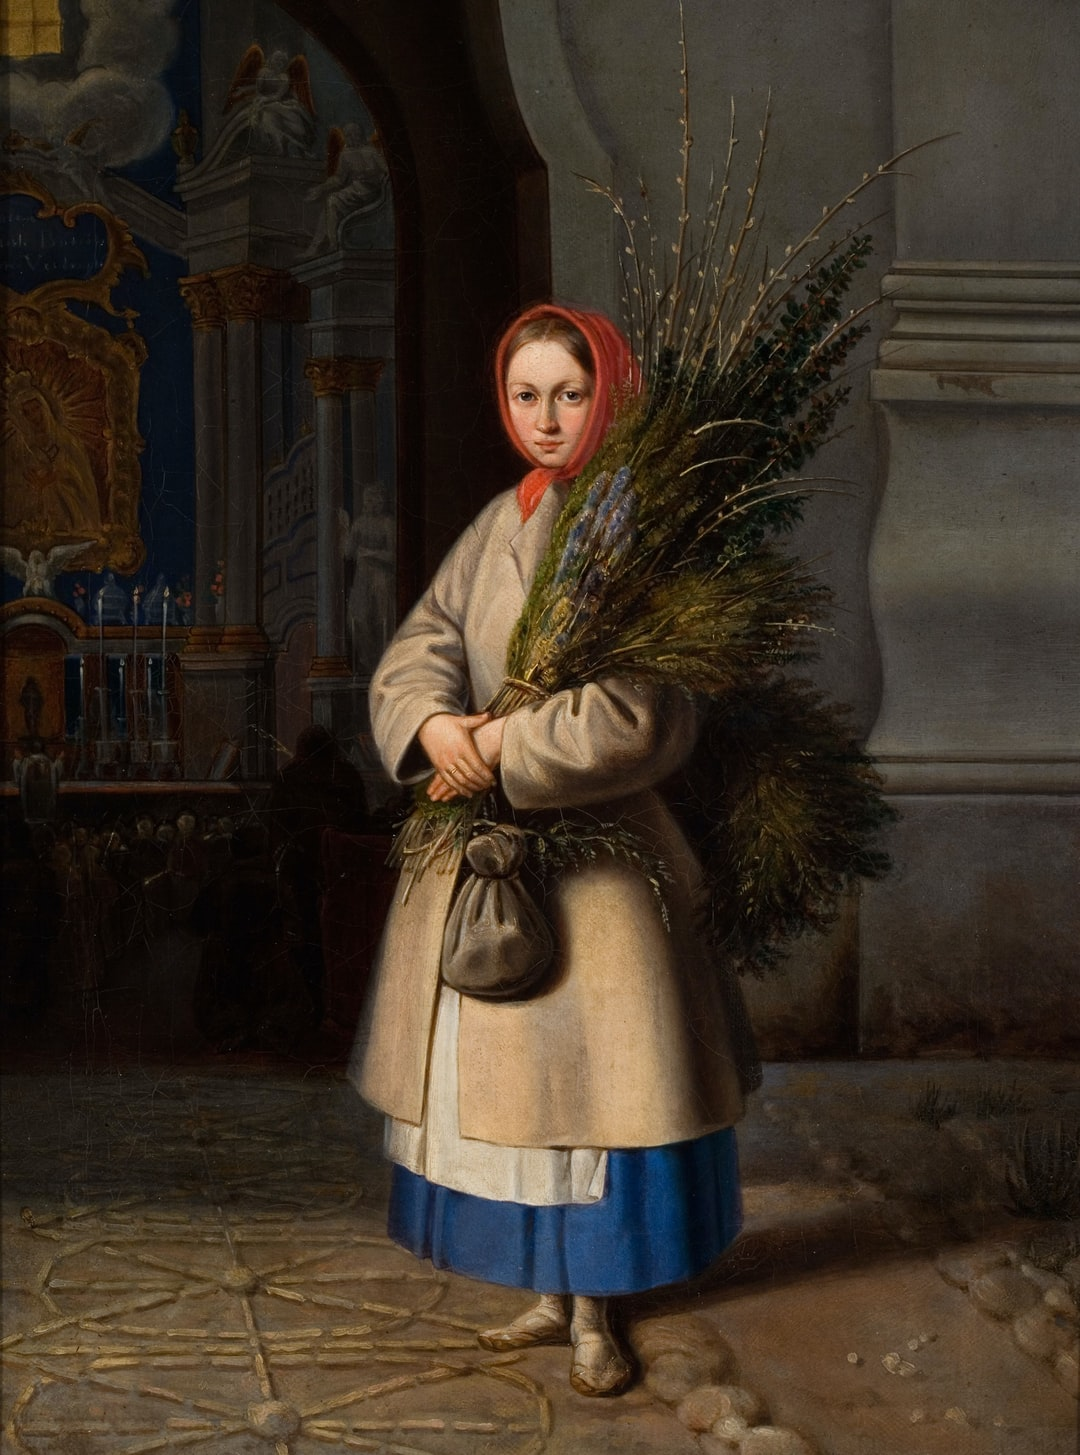 Lithuanian Girl with Palm Sunday Fronds by Kanutas Ruseckas. Provided by Lithuanian Art Museum. PD for Public Domain Mark